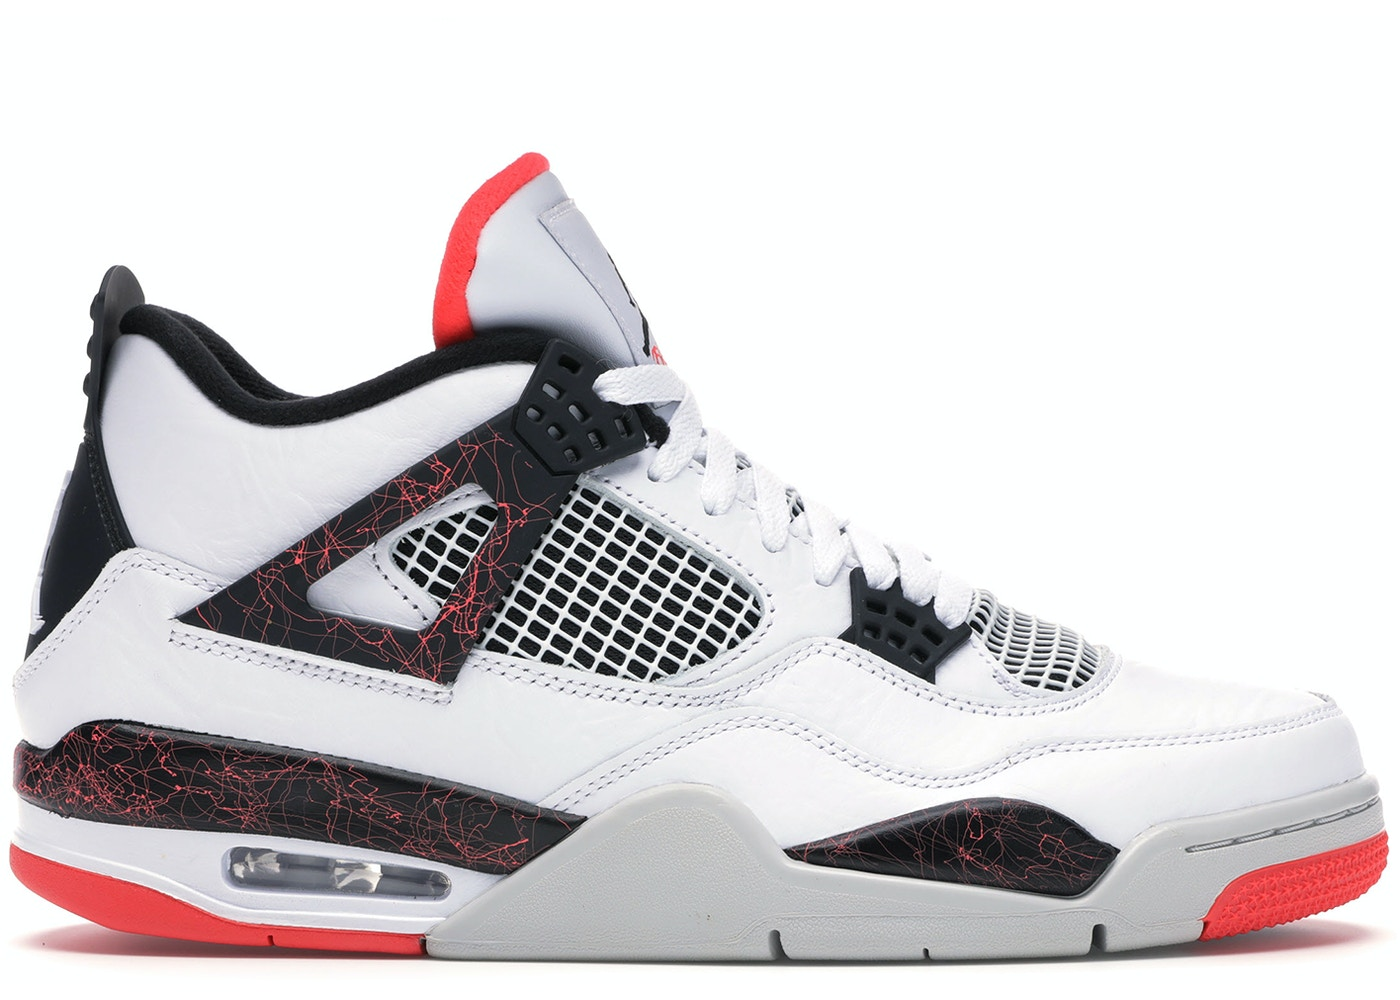 online store 031e4 e4b1a Buy Air Jordan 4 Shoes   Deadstock Sneakers